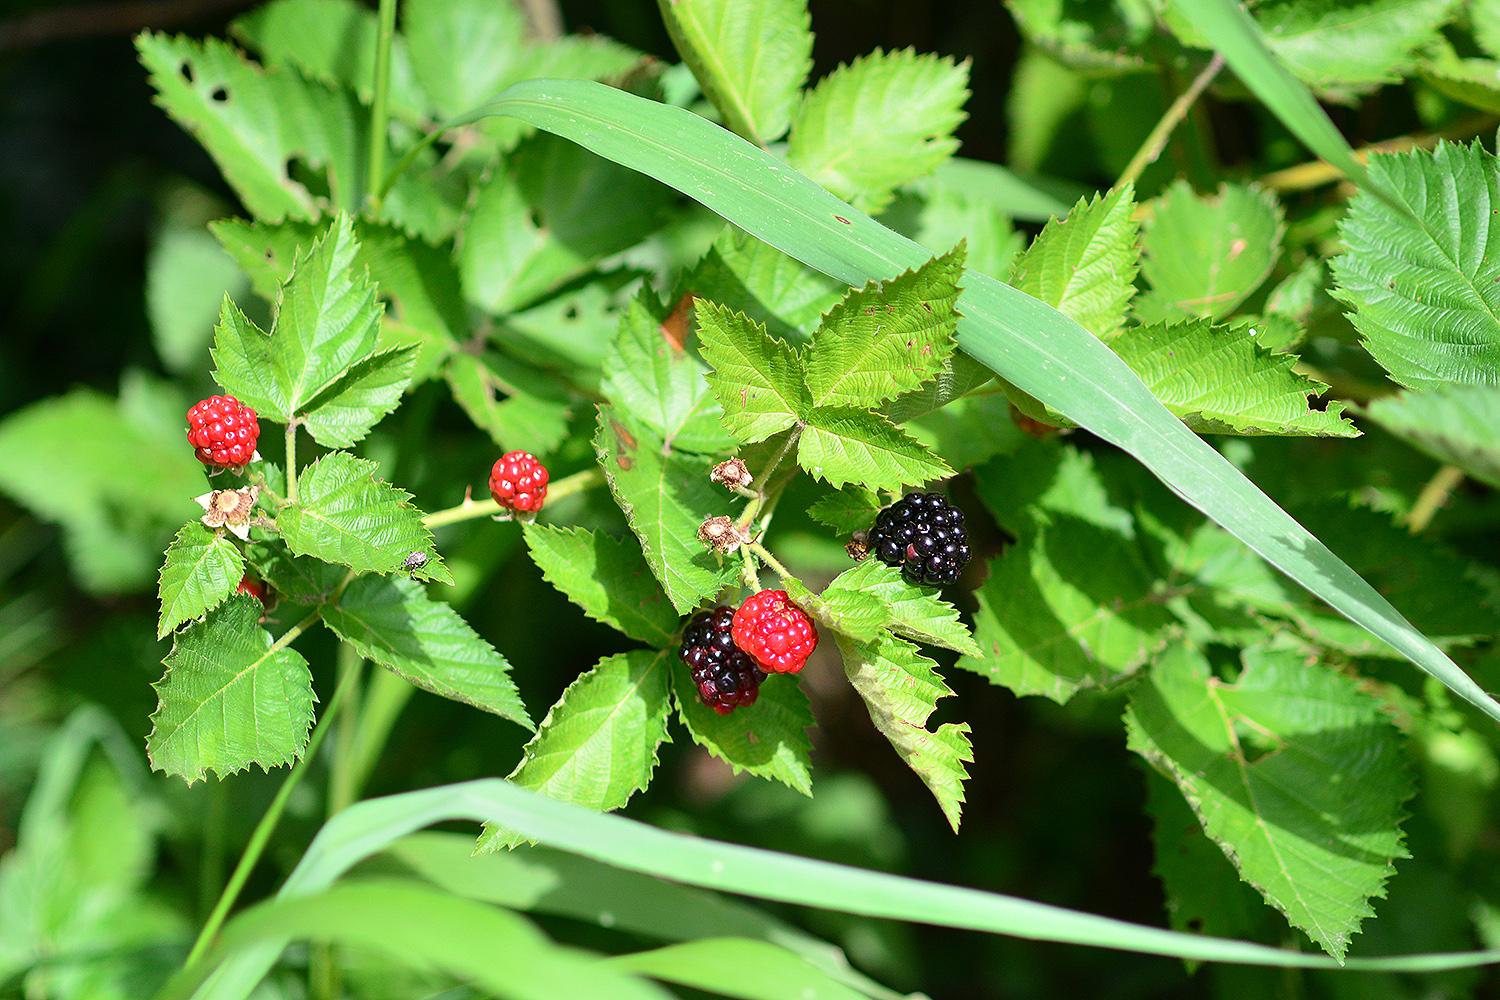 Blackberries, blueberries and multiple fruit trees offer edible treats throughout the summer for humans and wildlife.